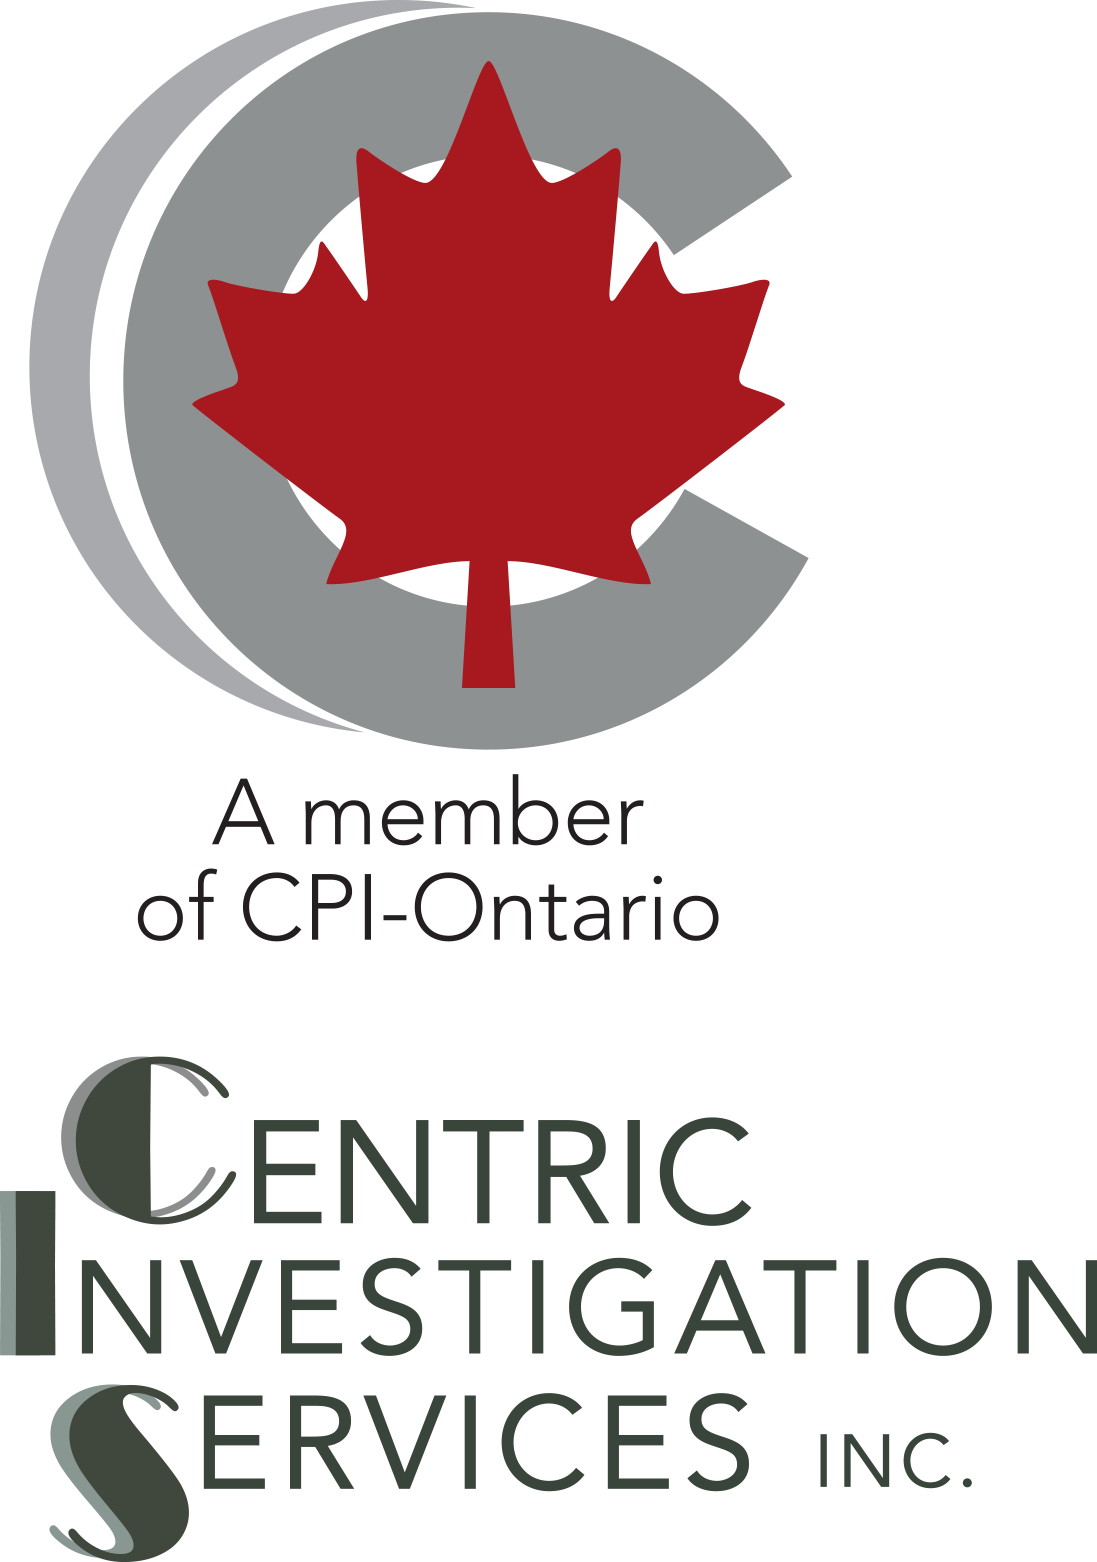 Centric Investigations_logo.png